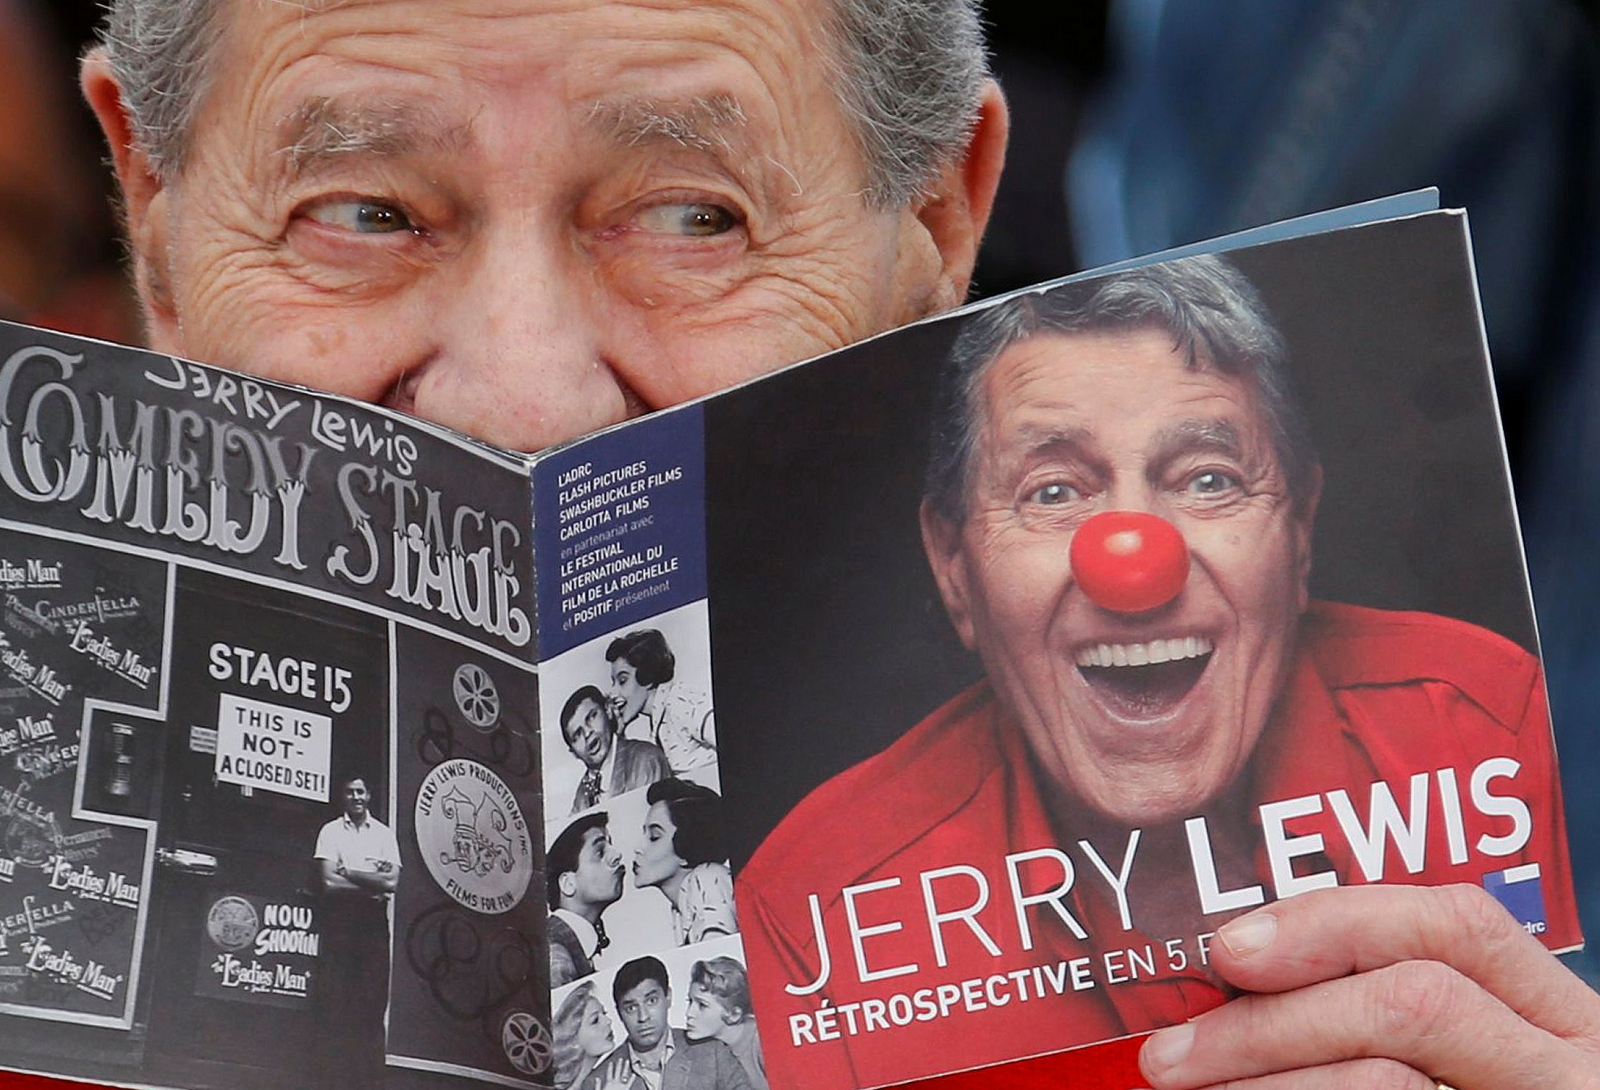 Jerry Lewis dead: Legendary comedian and Hollywood star dies aged 91